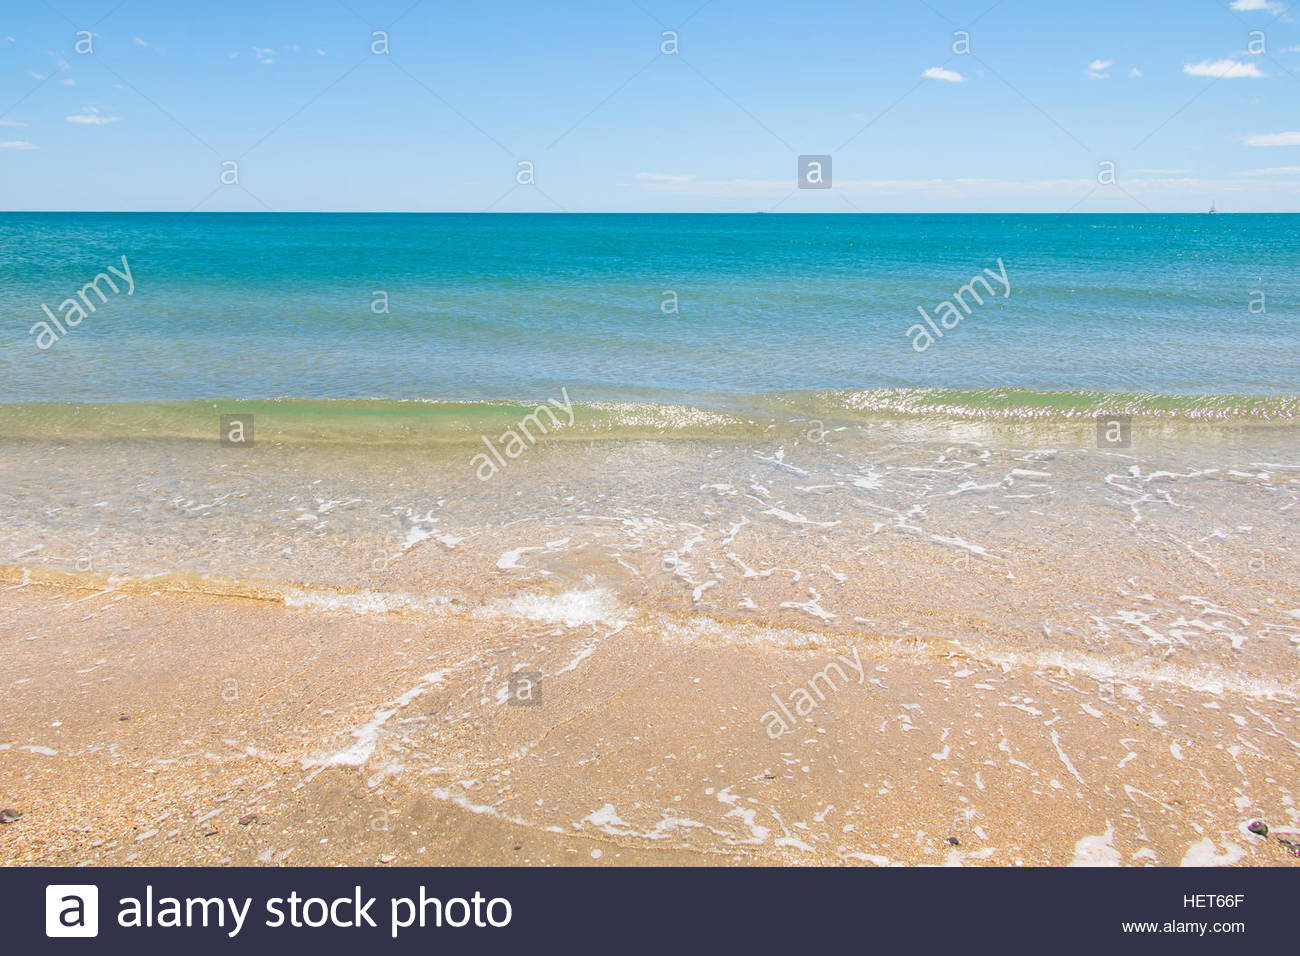 Trendy summer holiday destination, french mediterranean sandy beach beautiful nature landscape beach holiday oceanscape - Stock Image